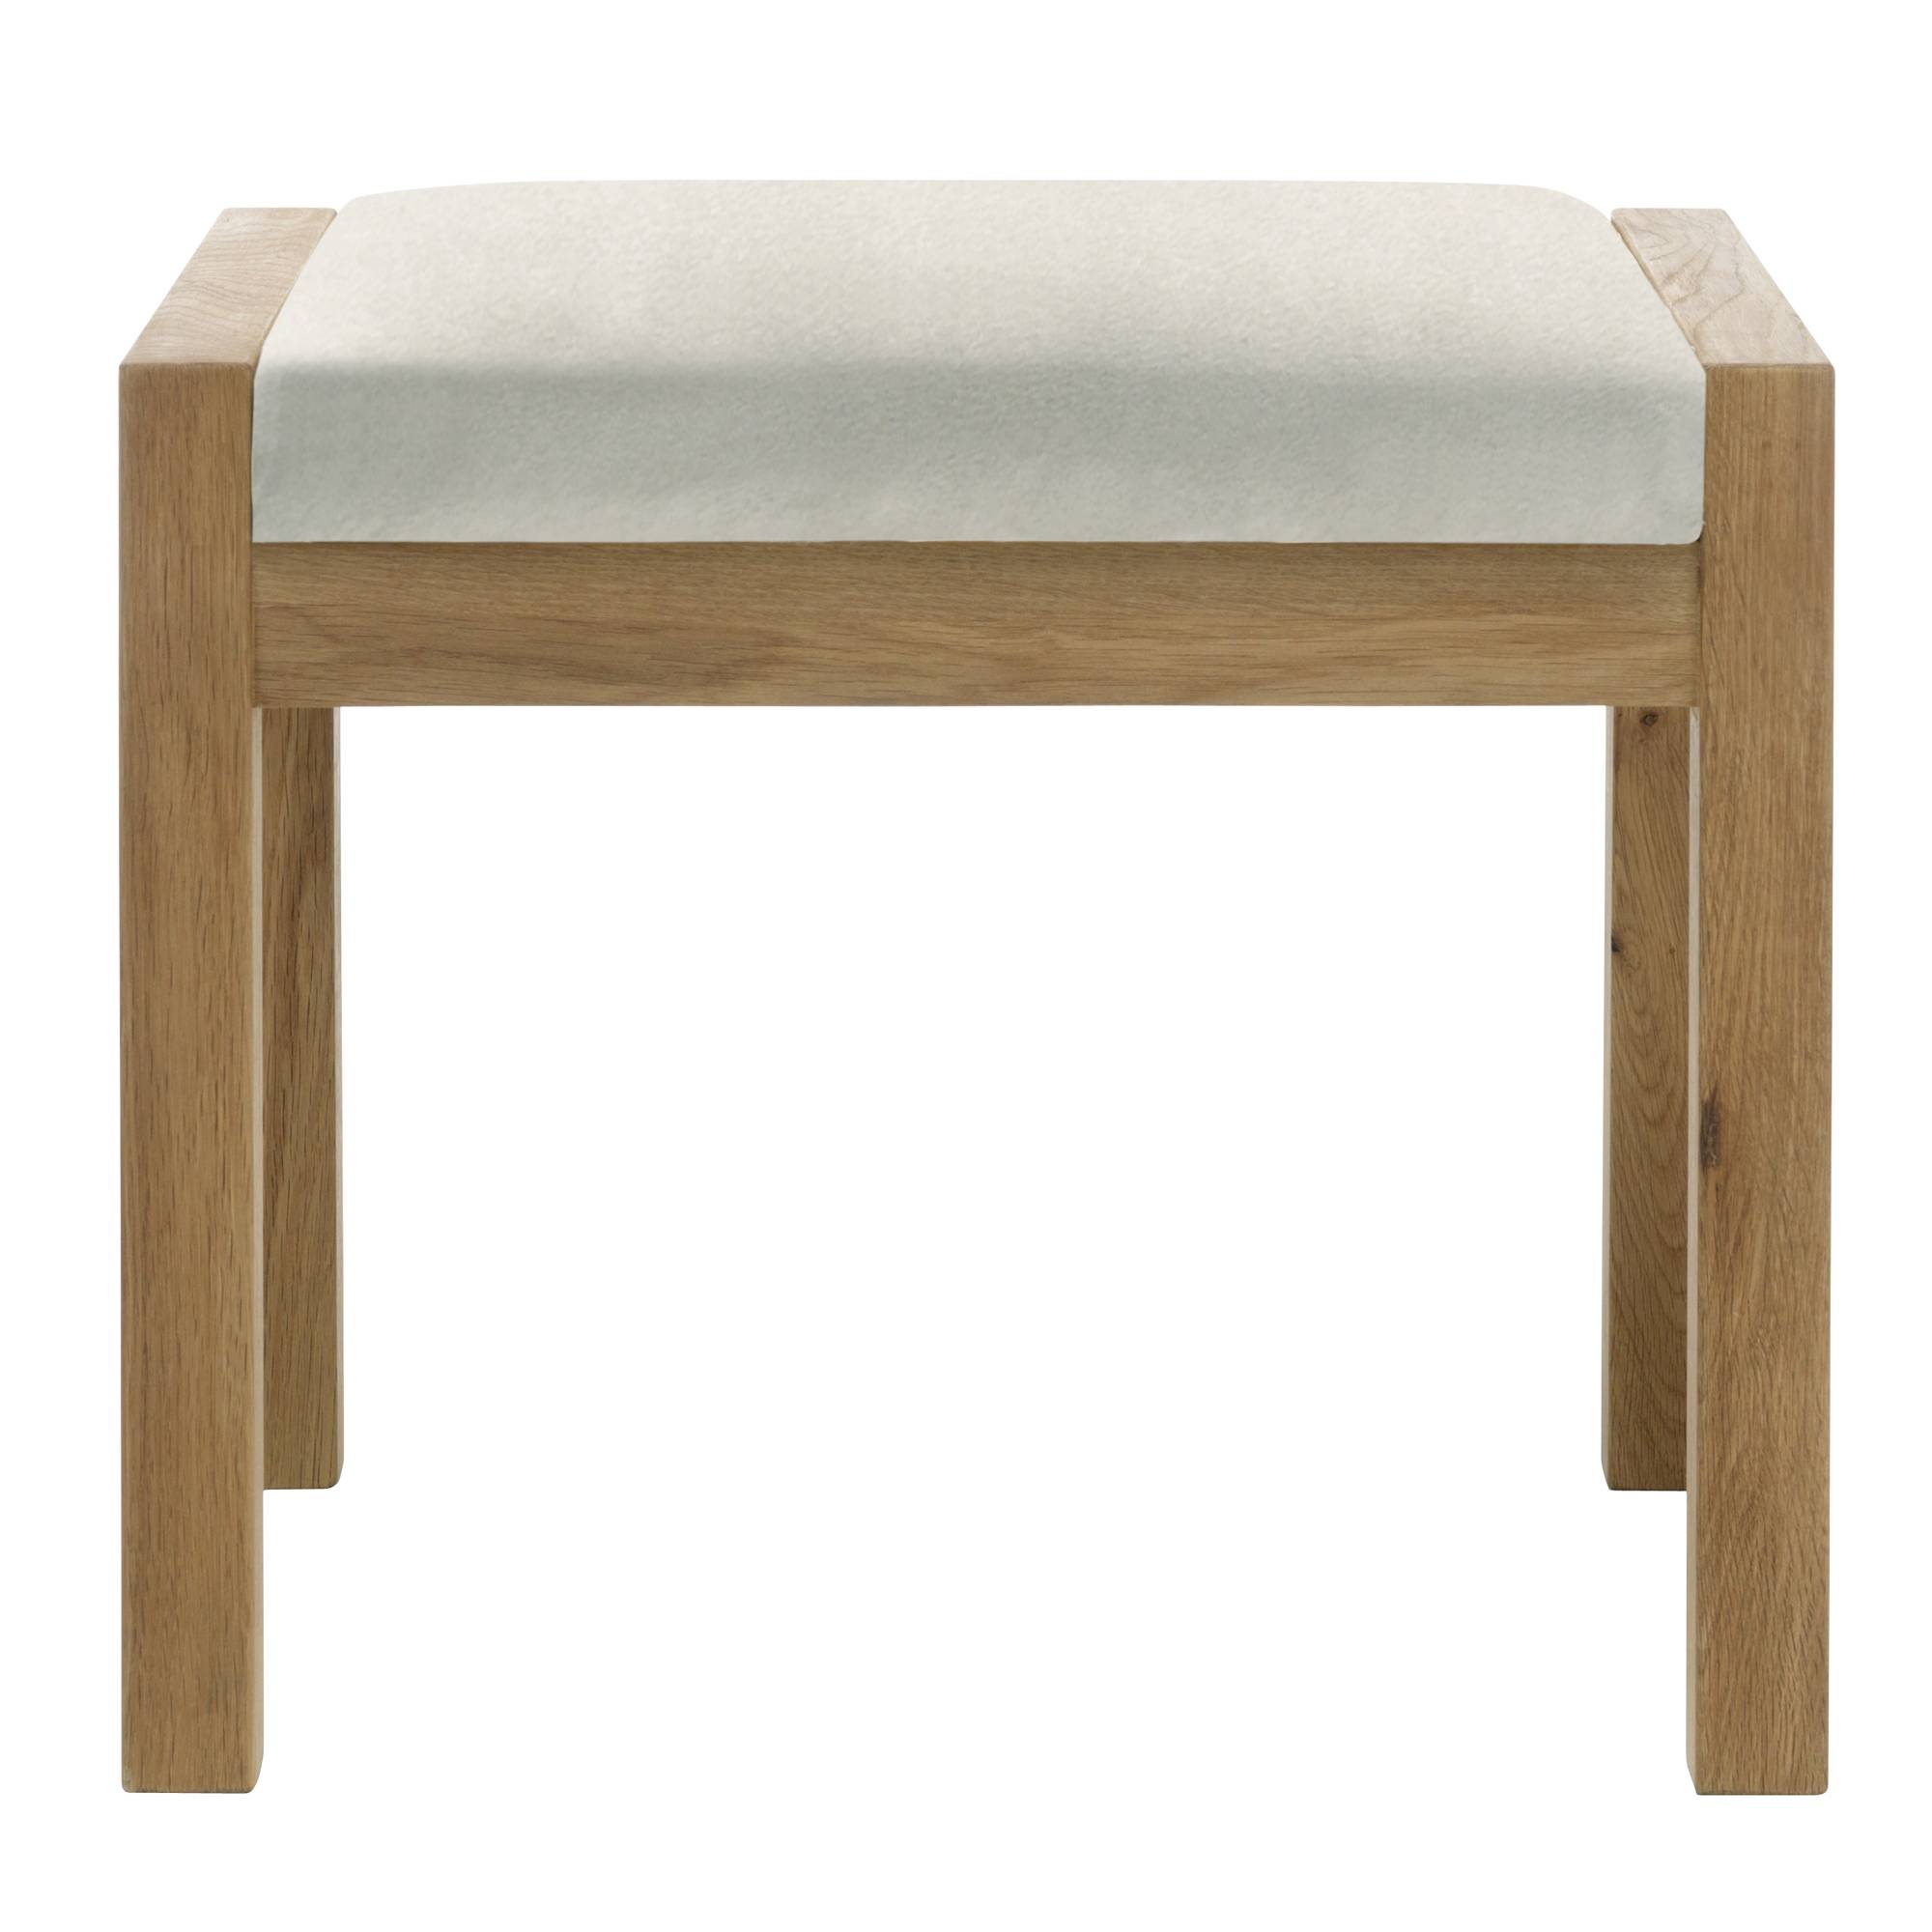 Bedroom Stools And Benches Athens Oak Bedroom Stool C W Beige Fabric Seat Pad